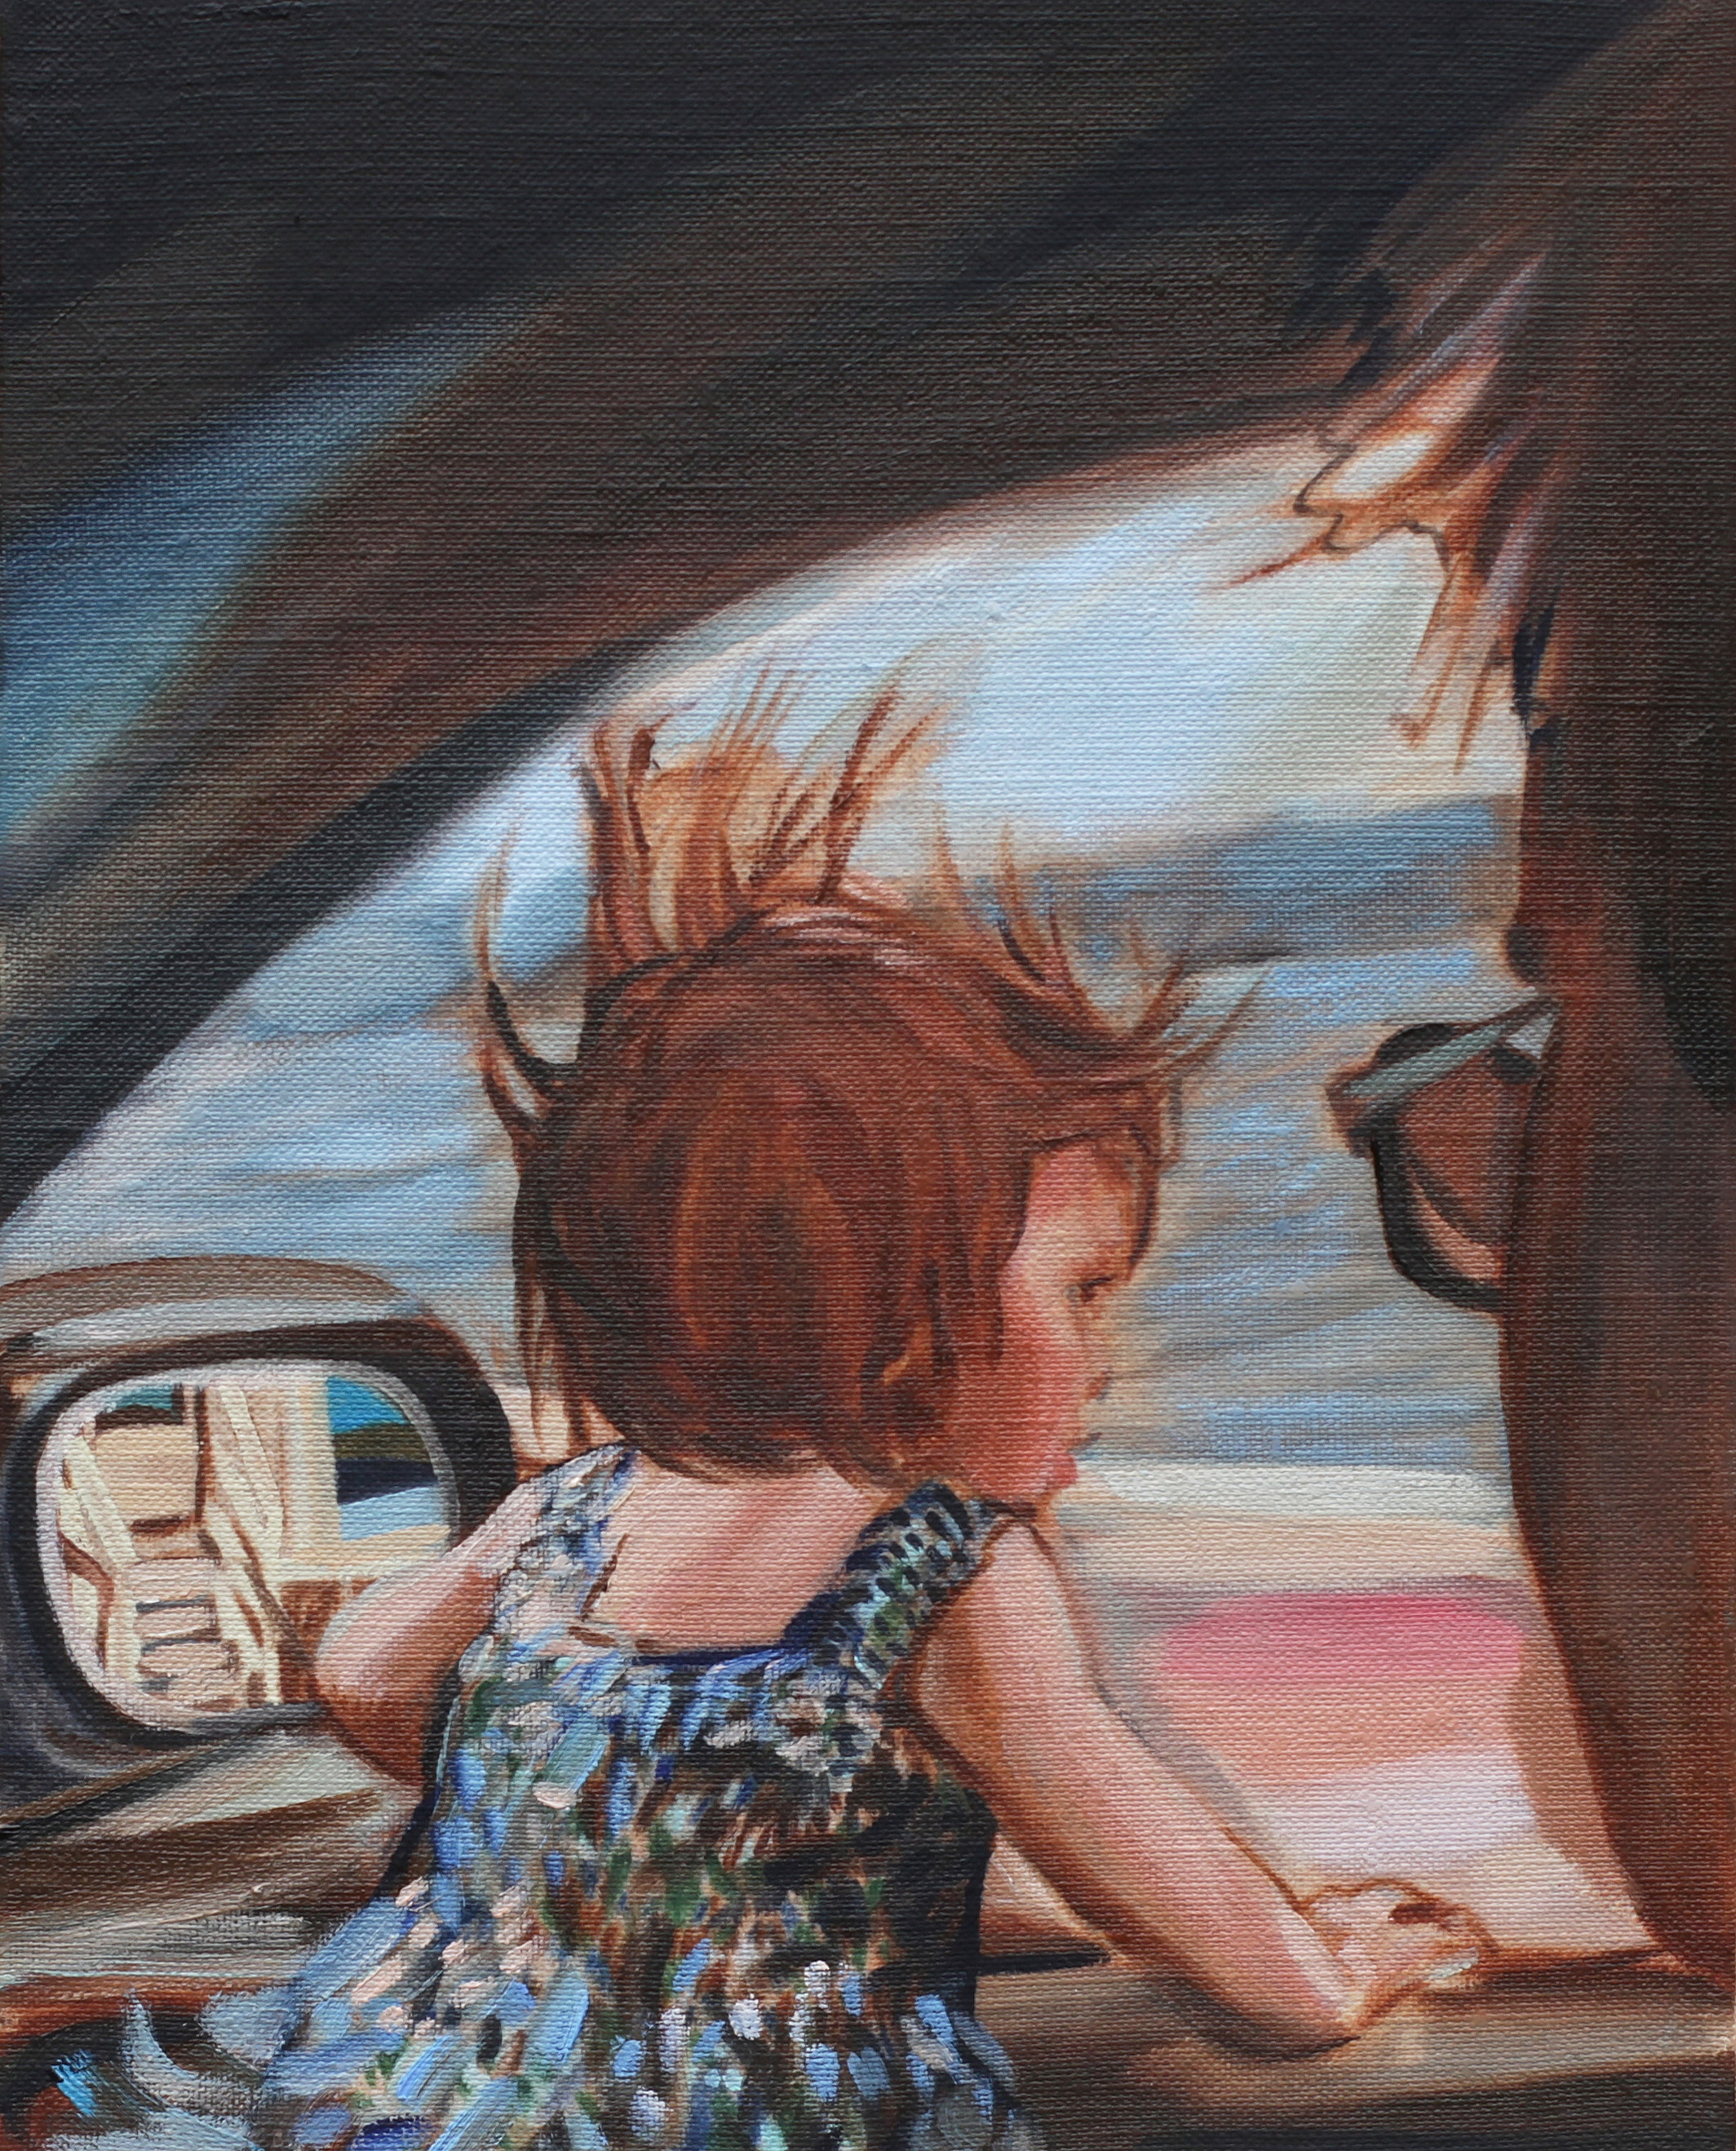 Rearview , Oil on linen board, 23 x 16 cm, 2016.